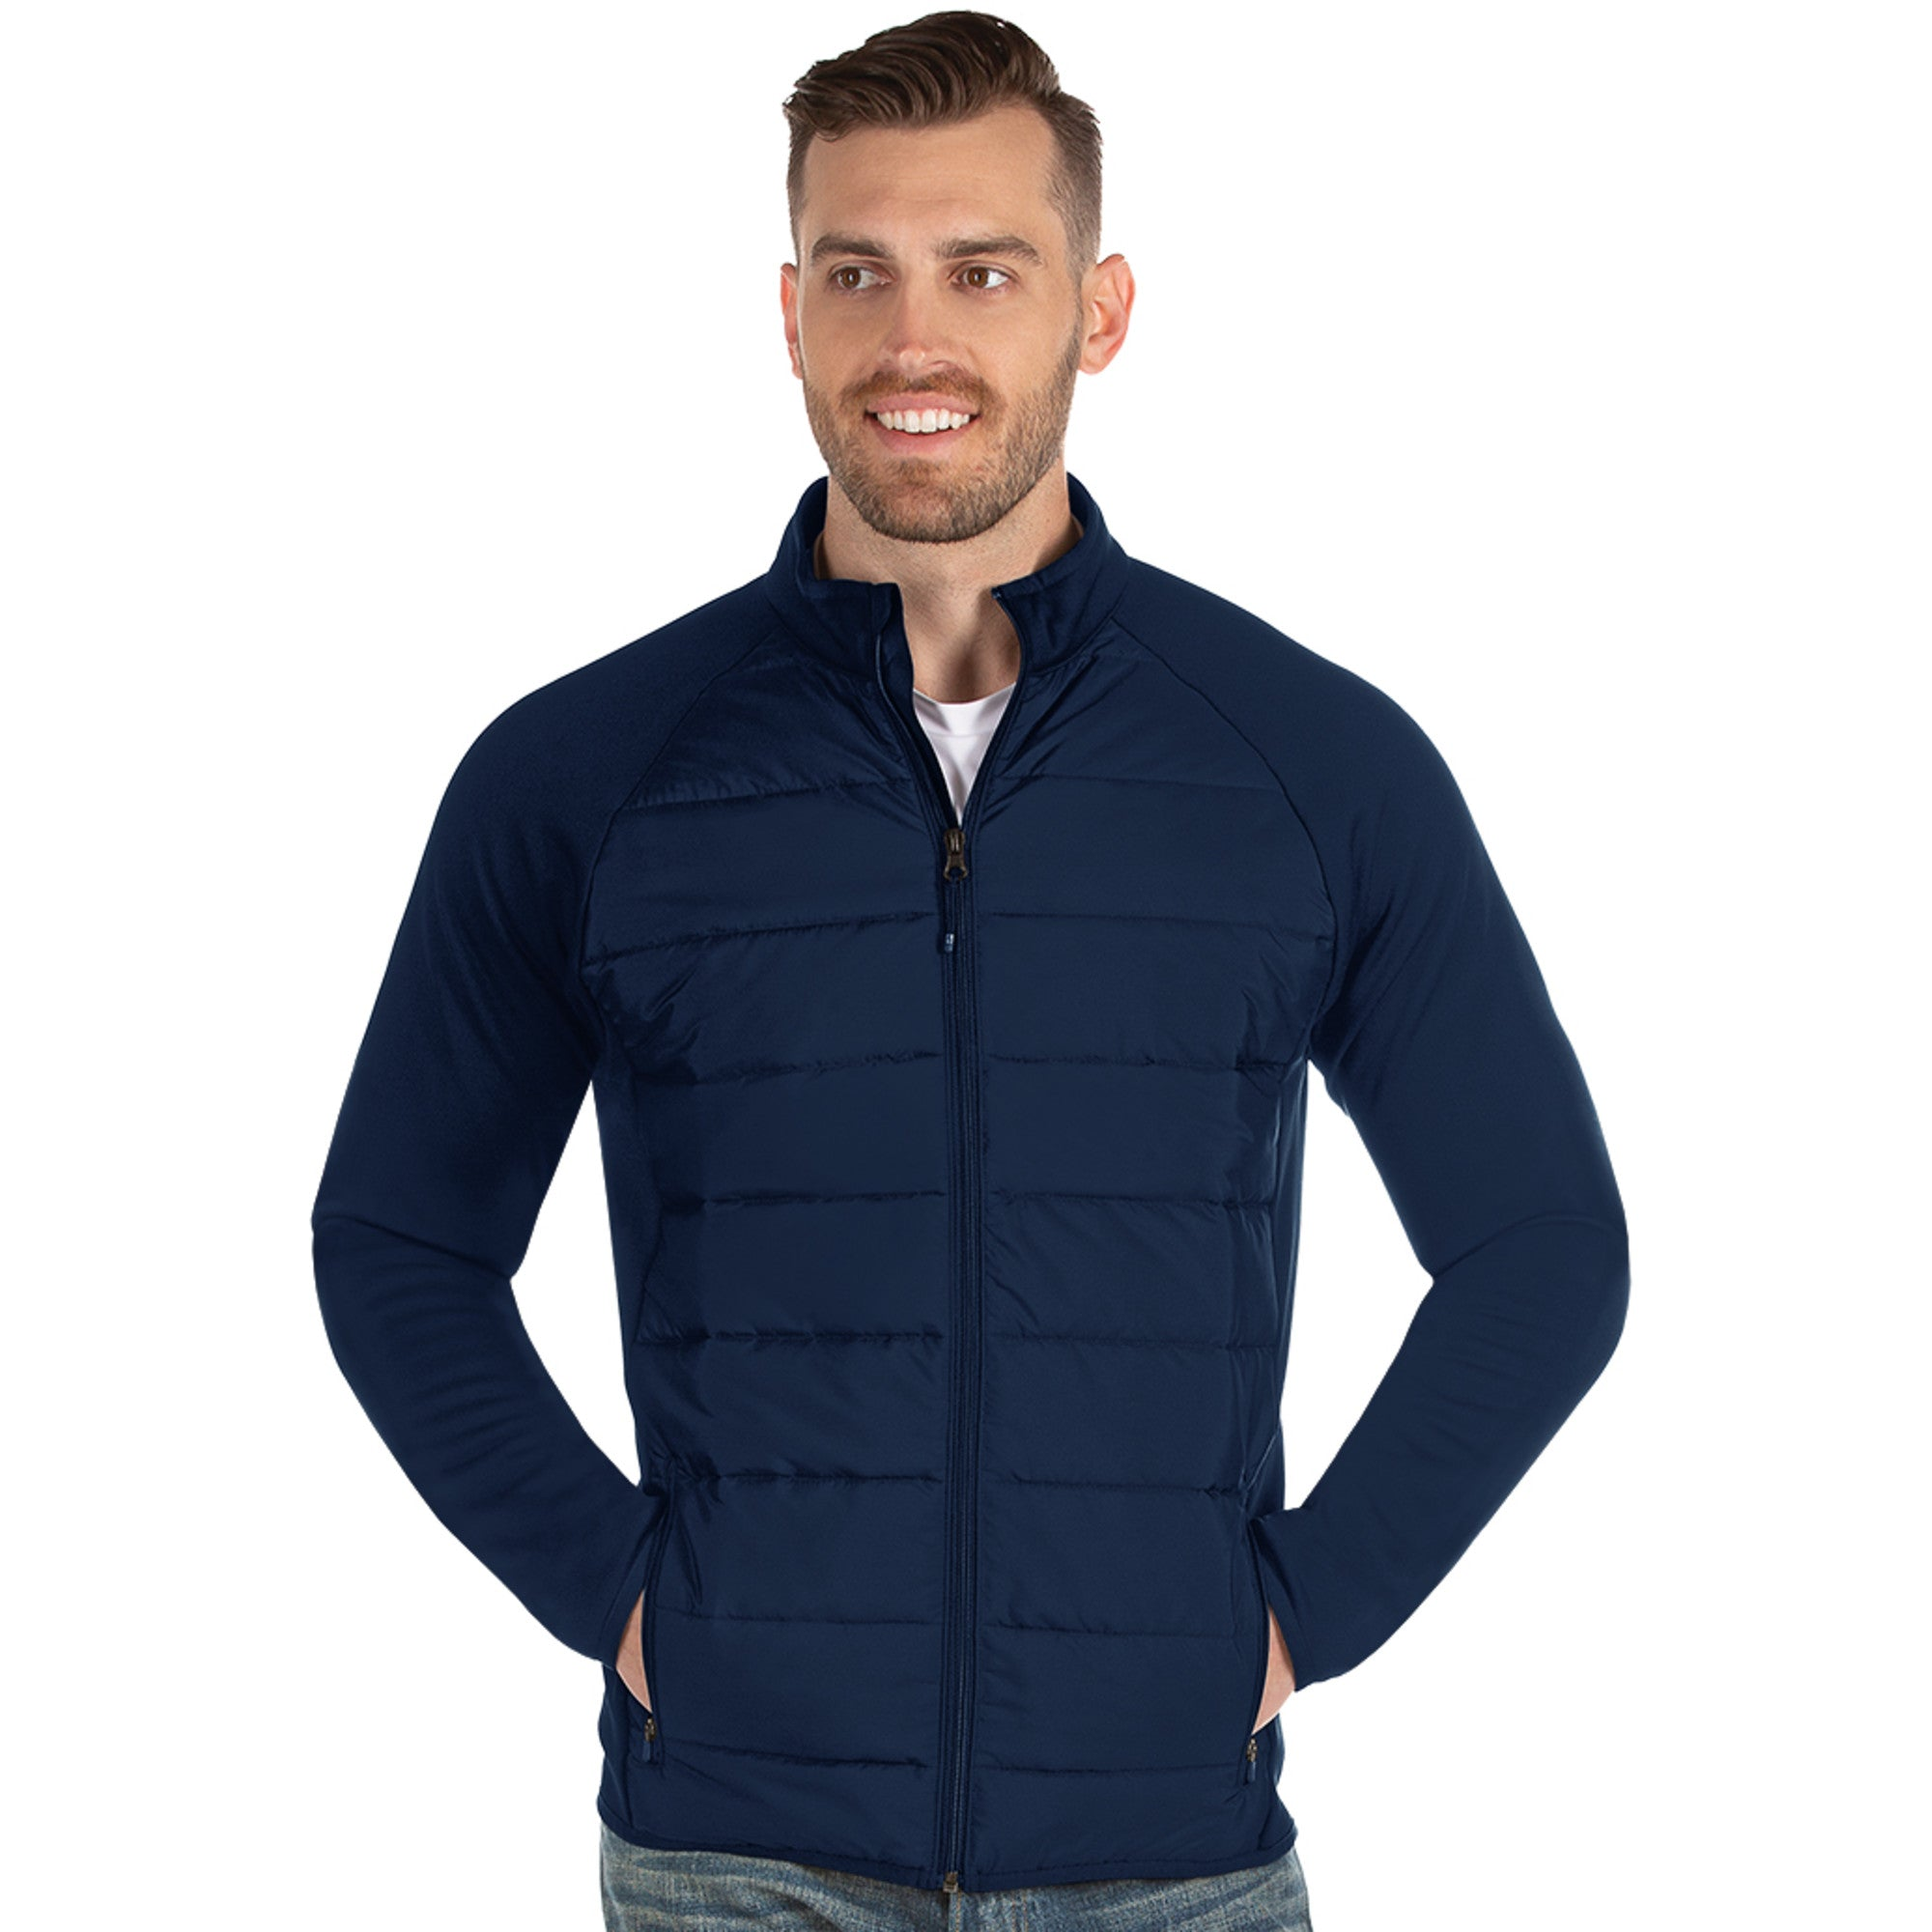 Mens Antigua Altitude Jacket Navy